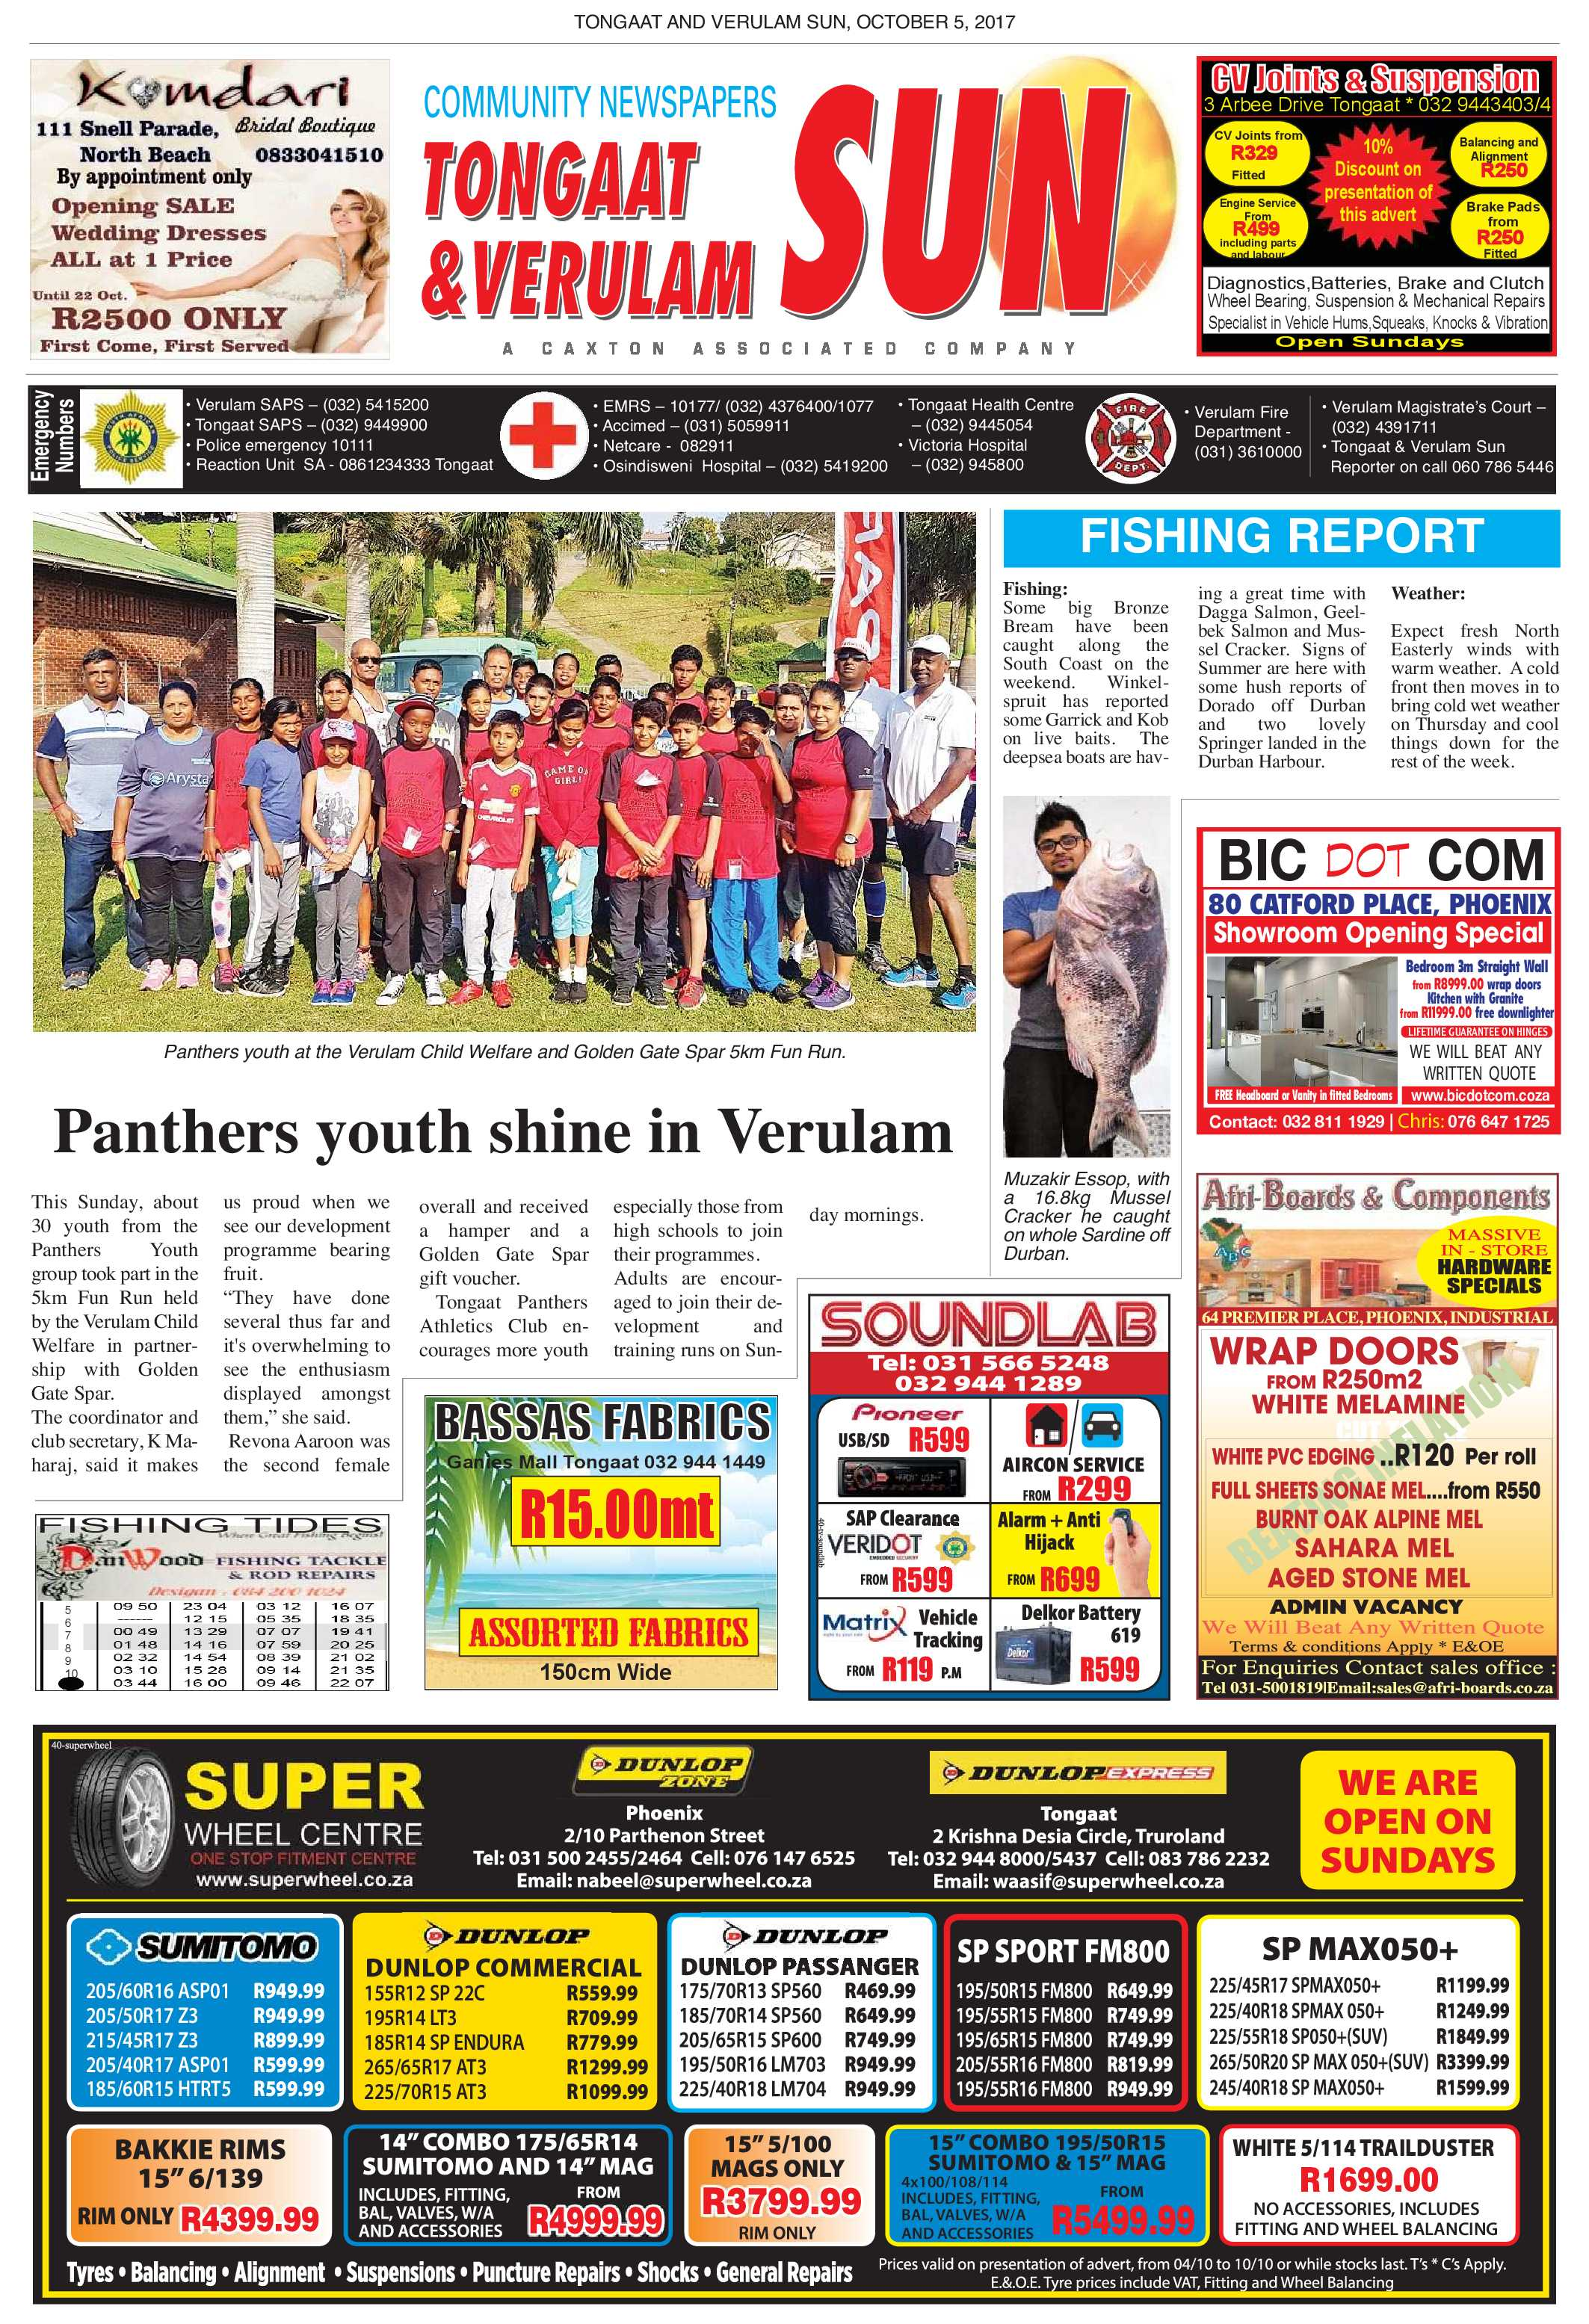 tongaat-verulam-sun-october-5-epapers-page-12